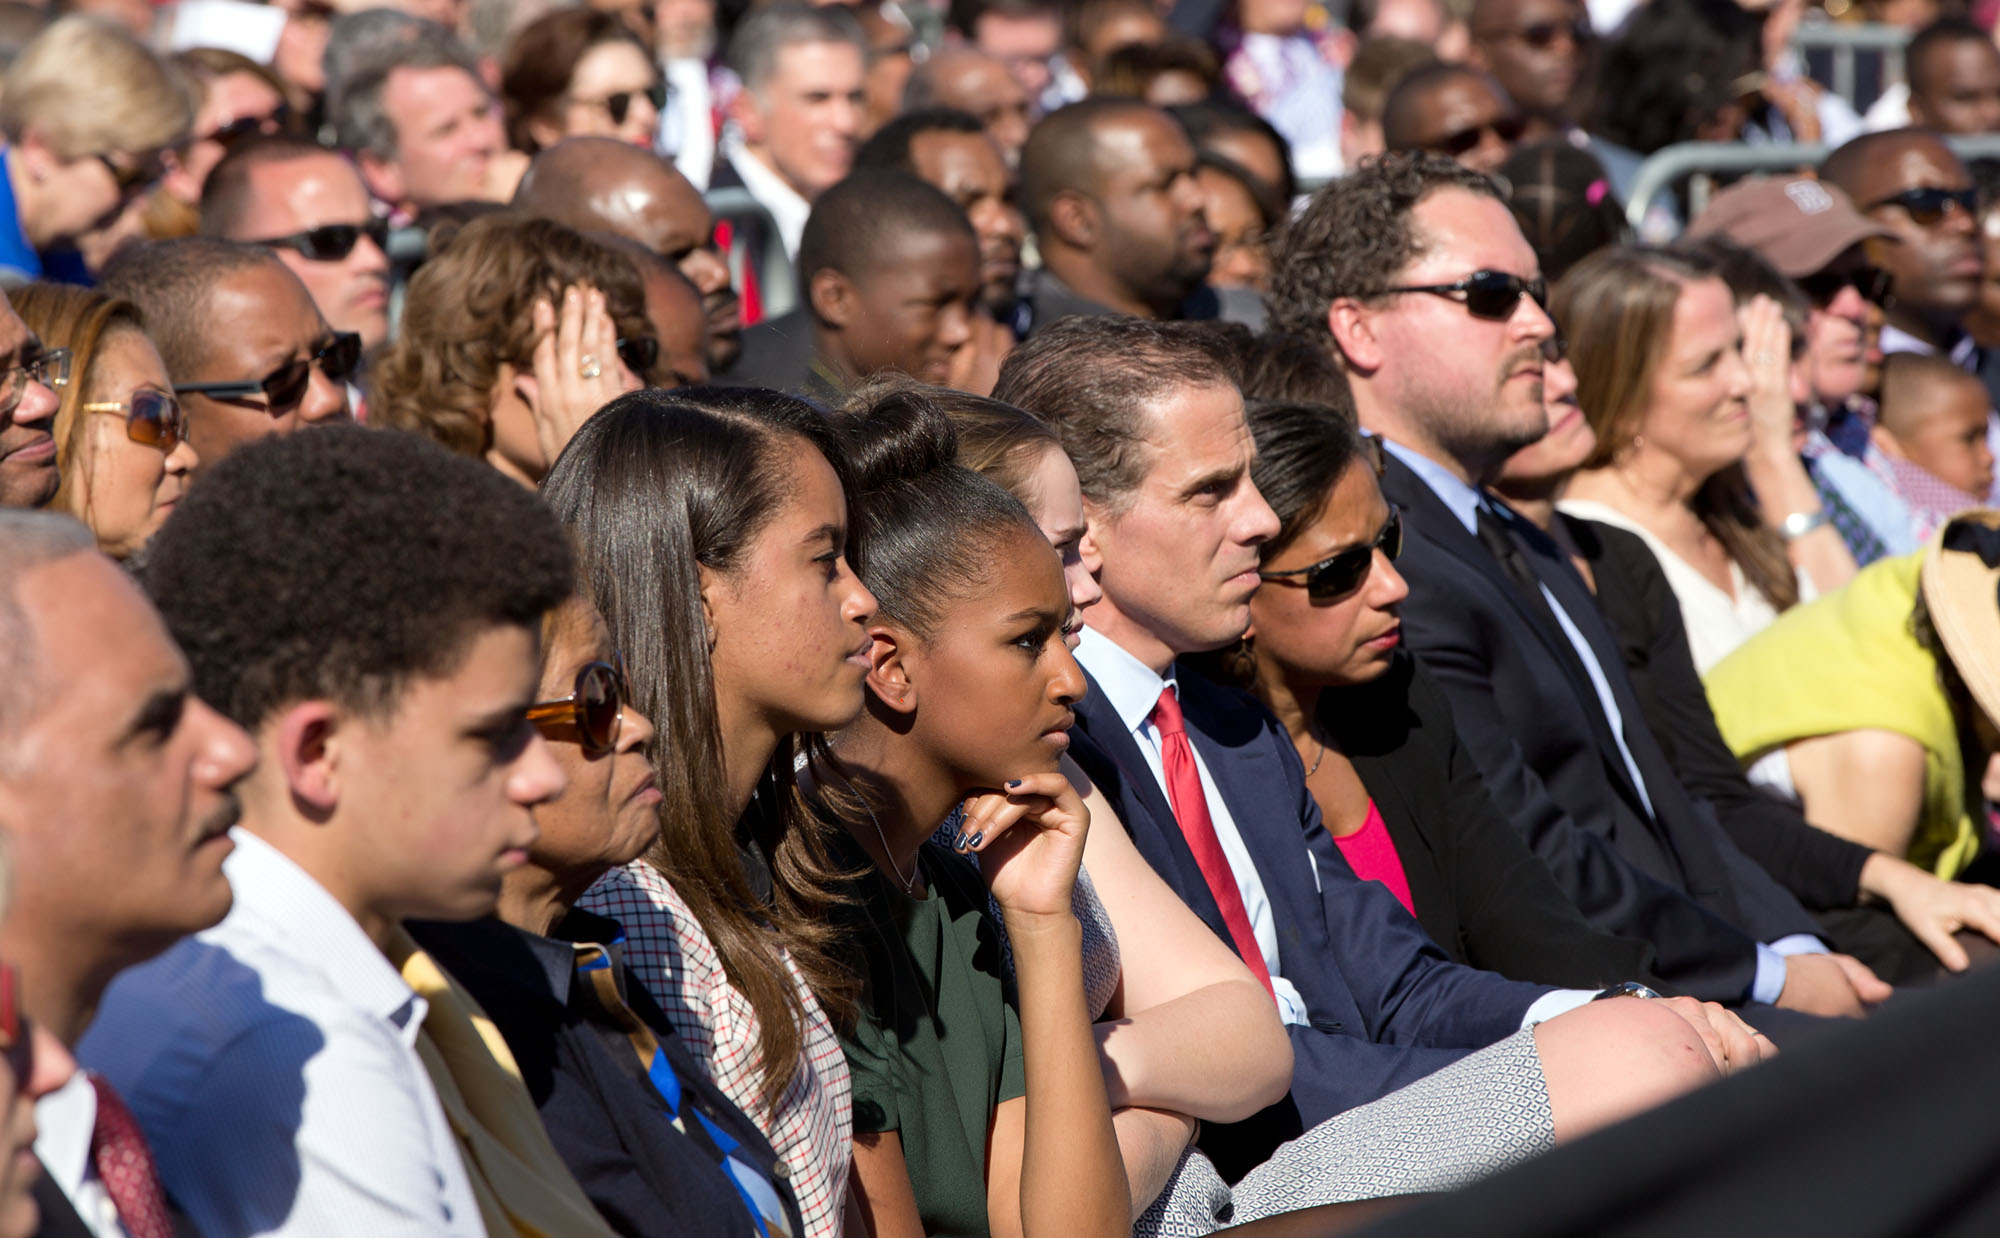 Malia and Sasha Obama and other family, friends, and White House staff listen to the President. Attorney General Eric Holder is at far left. (Official White House Photo by Pete Souza)